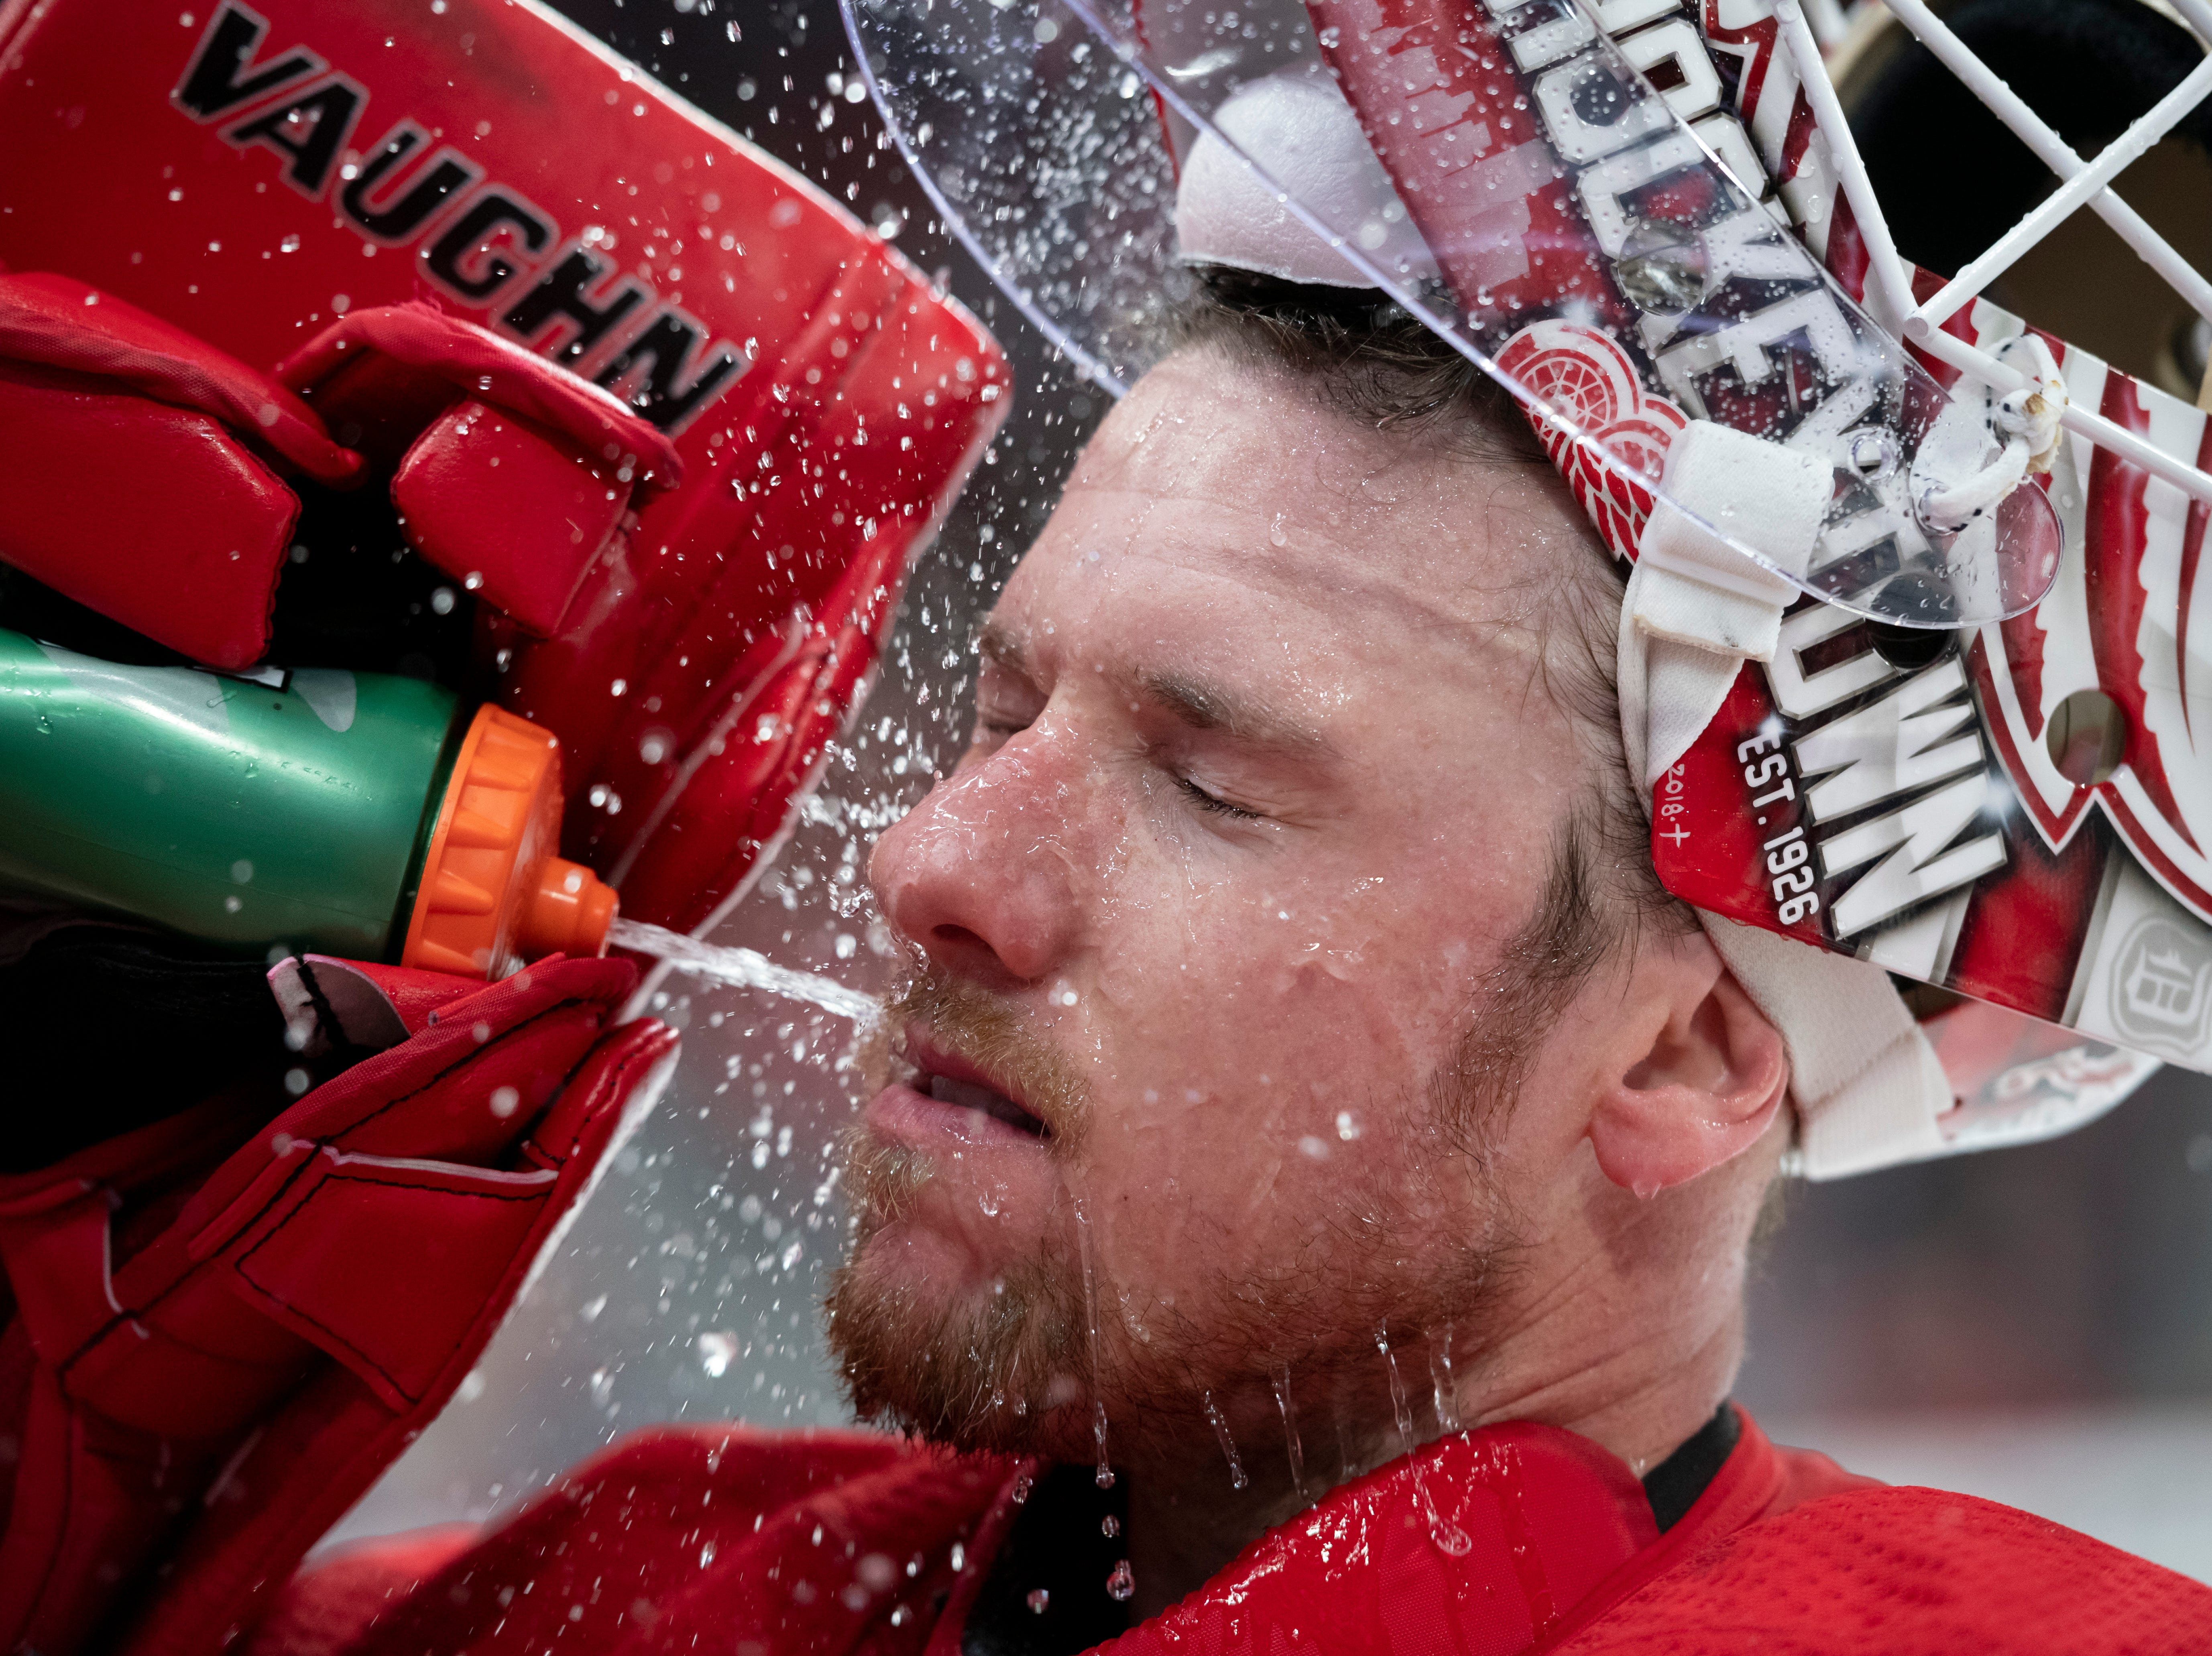 Detroit goaltender Jimmy Howard refreshes himself with a splash of water during a game against the Toronto Maple Leafs at Little Caesars Arena, in Detroit, October 11, 2018.